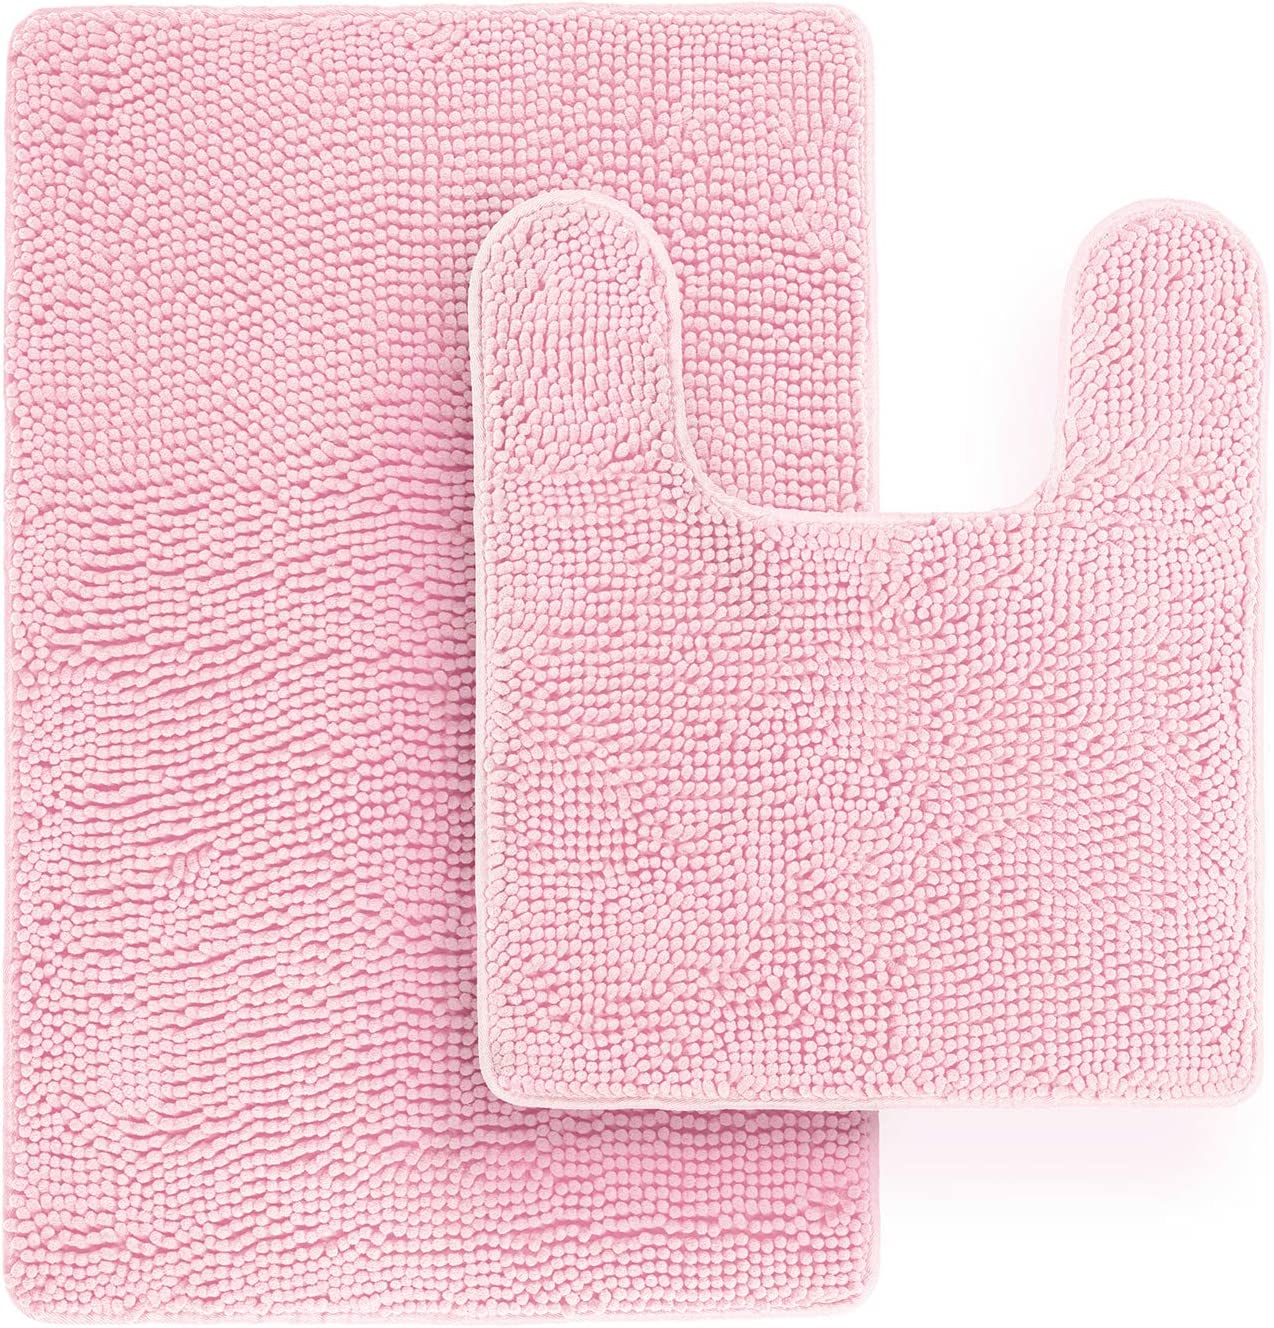 "Tafts Bathroom Rugs and Mats Sets, Ultra Soft Chenille Microfiber, Absorbent Non-Slip Machine Washable, Bathroom Decor, Super Plush Bath Mat for Bathroom, Shower & Tub, 20""x22"" & 21""x32"", Light Pink"